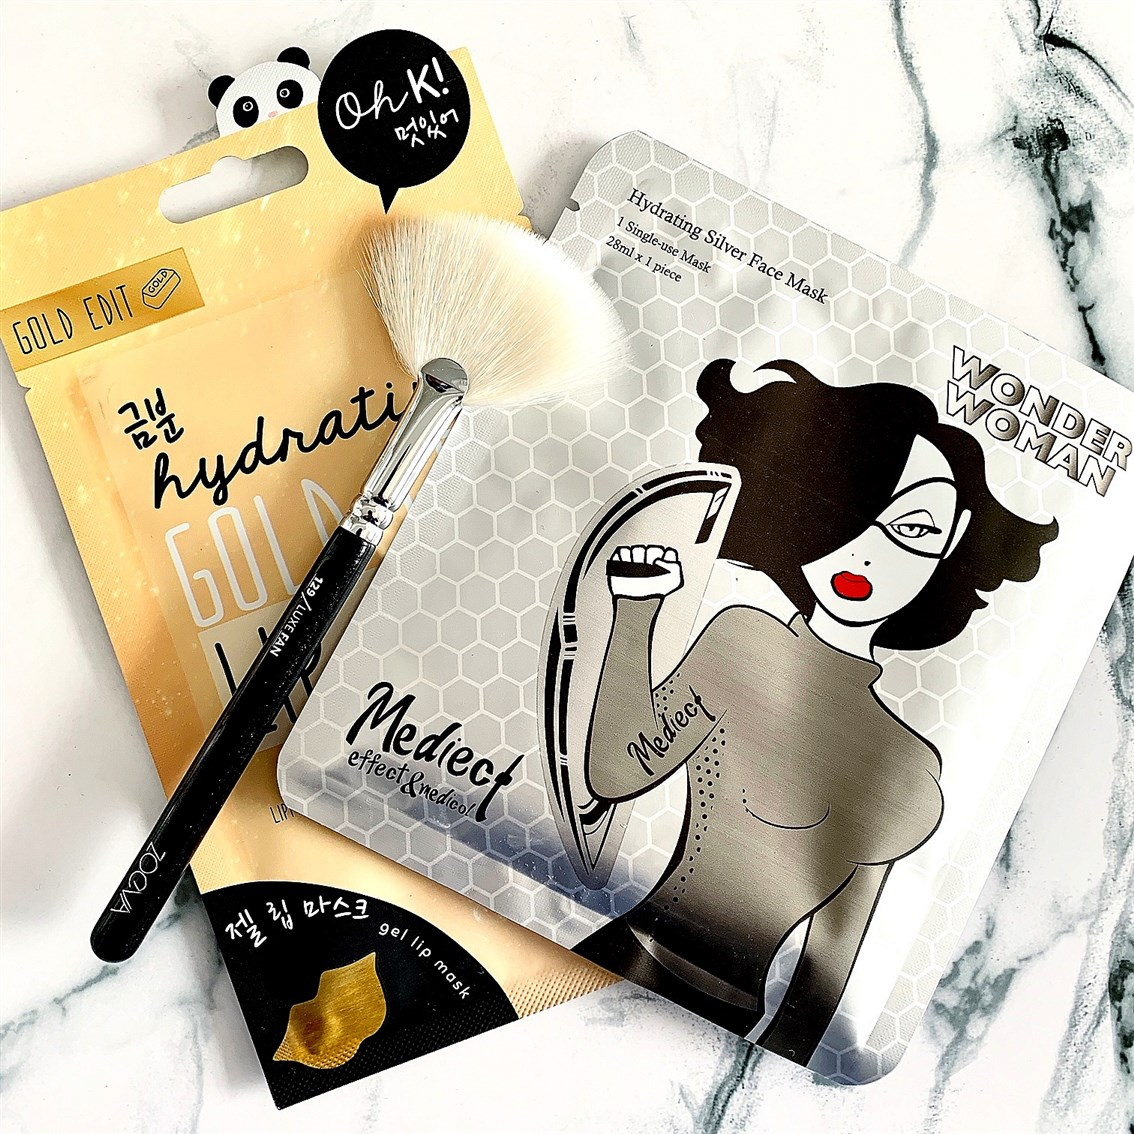 Mediect Hydrating Silver Face Mask